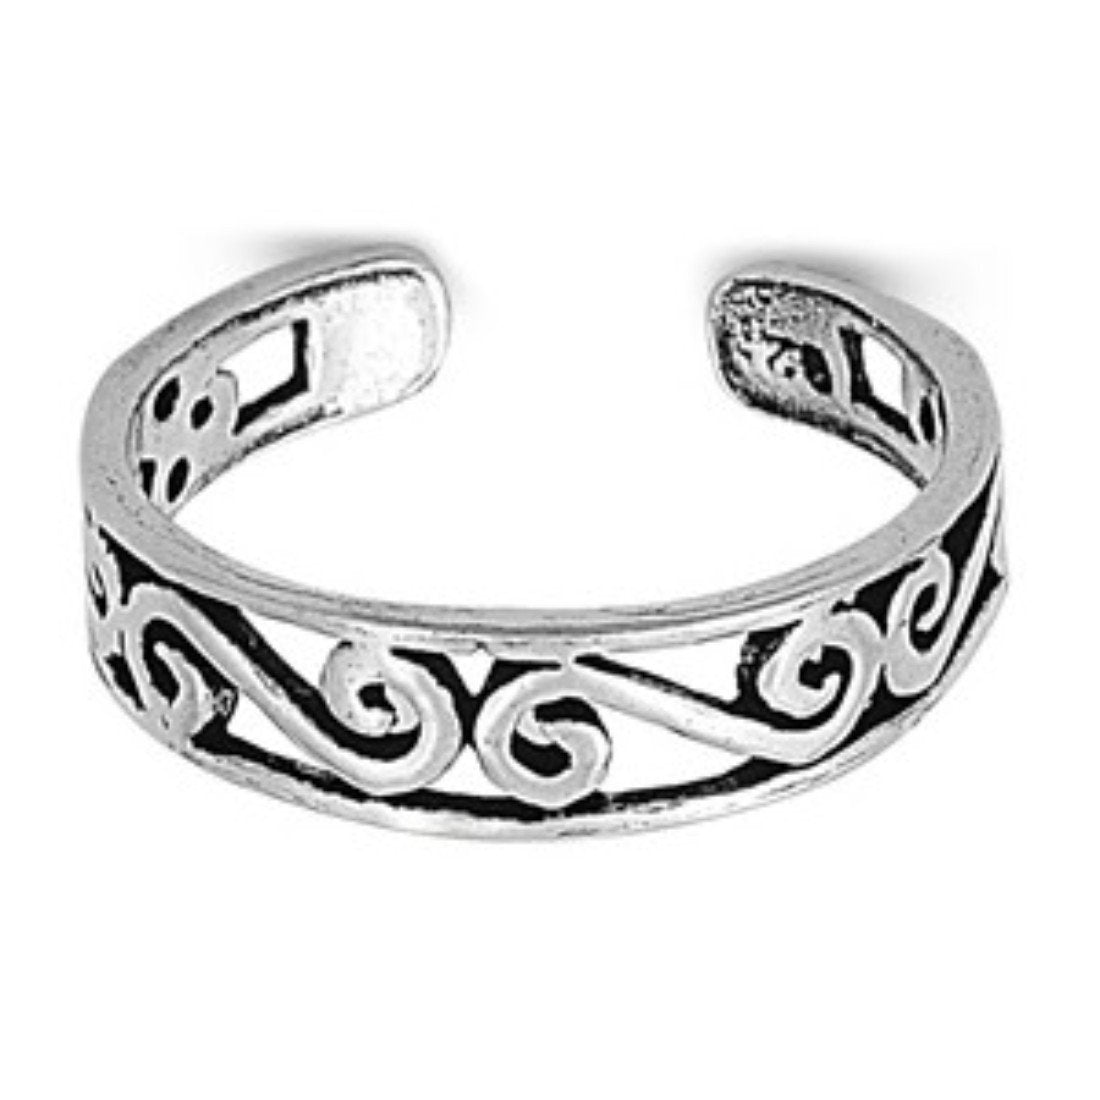 Adjustable Silver Toe Ring Band 925 Sterling Silver (4mm)